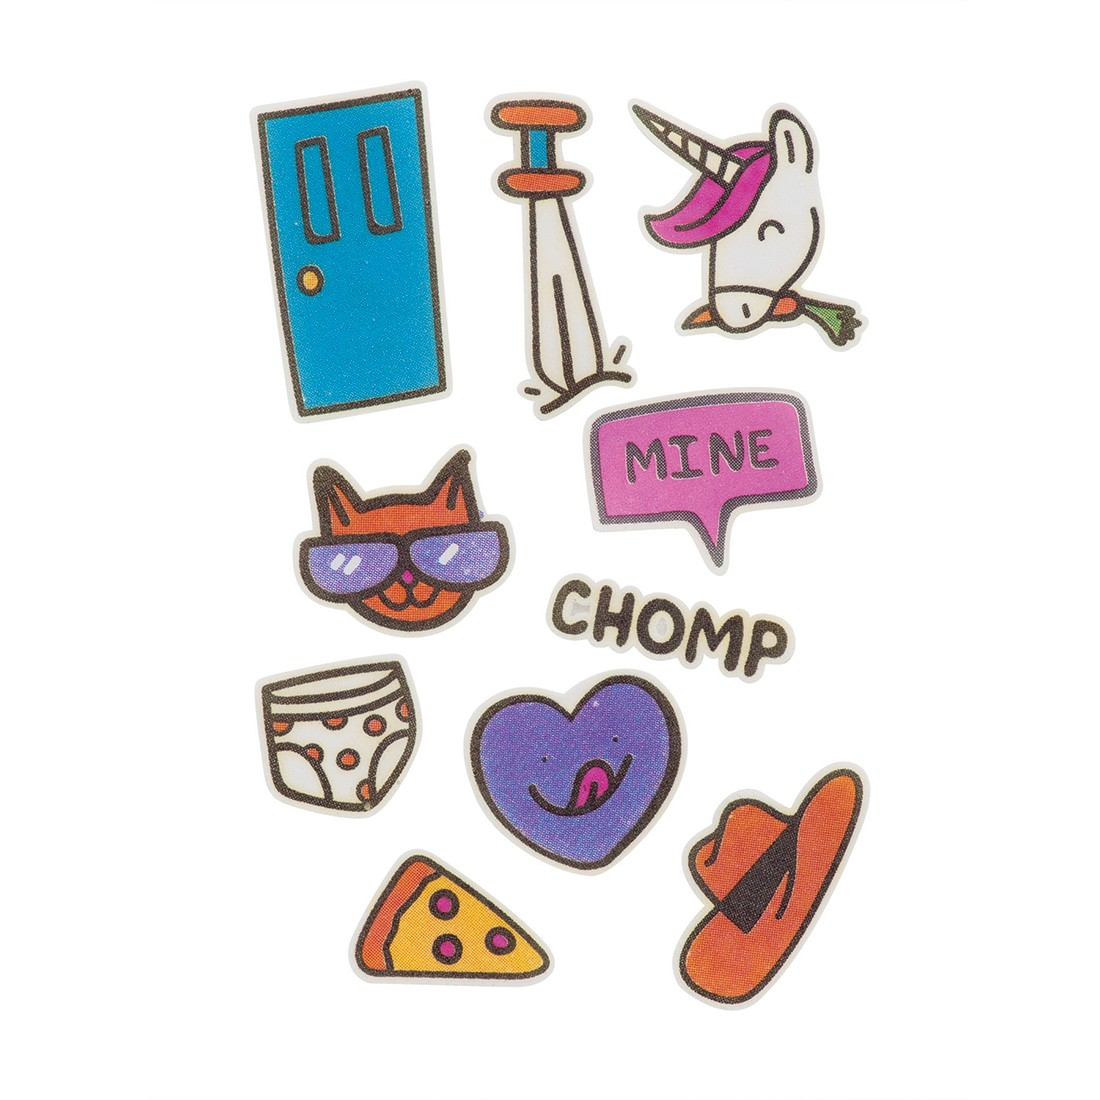 Doodle Dums StickyLickits Edible Sticker Packs [image]